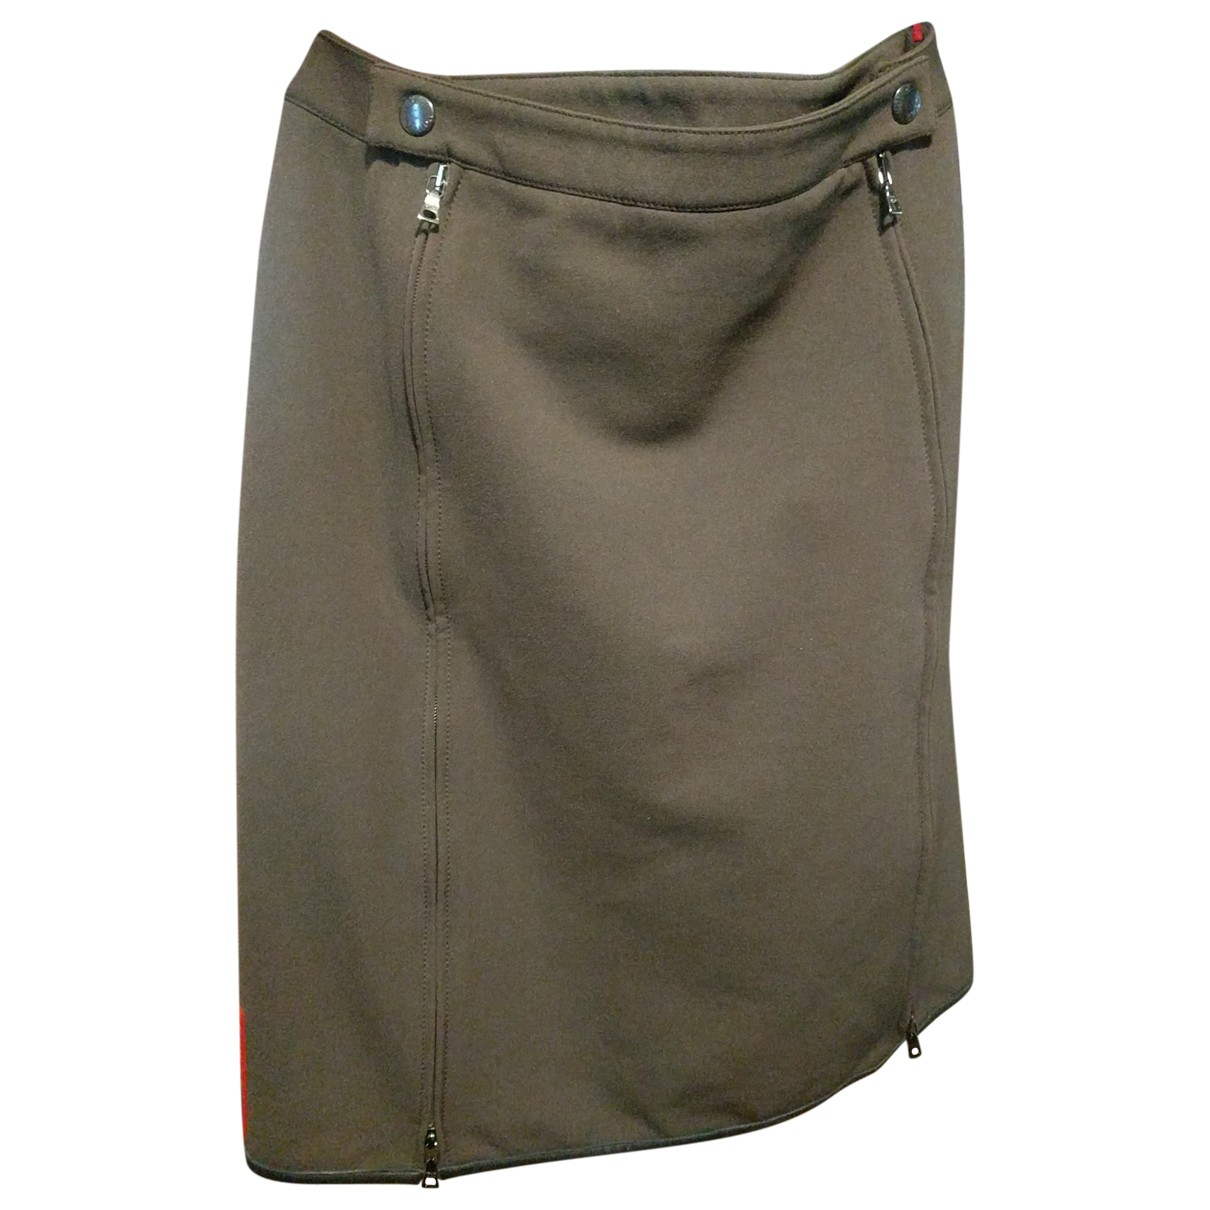 Prada \N Khaki Cotton - elasthane skirt for Women 42 FR